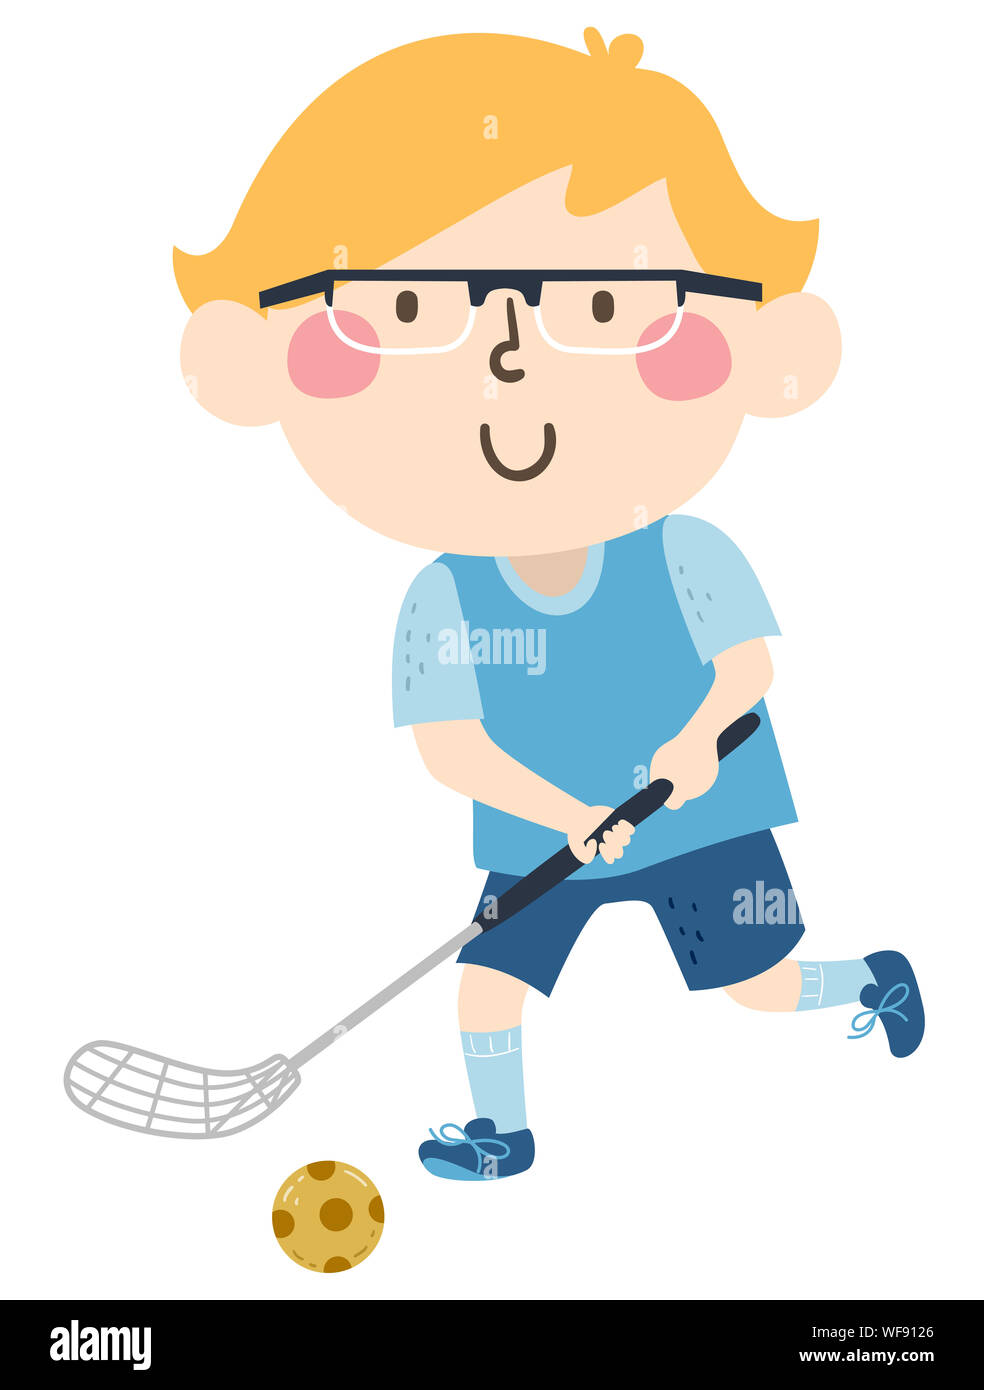 Cartoon Illustration Child Hockey Player High Resolution Stock Photography And Images Alamy